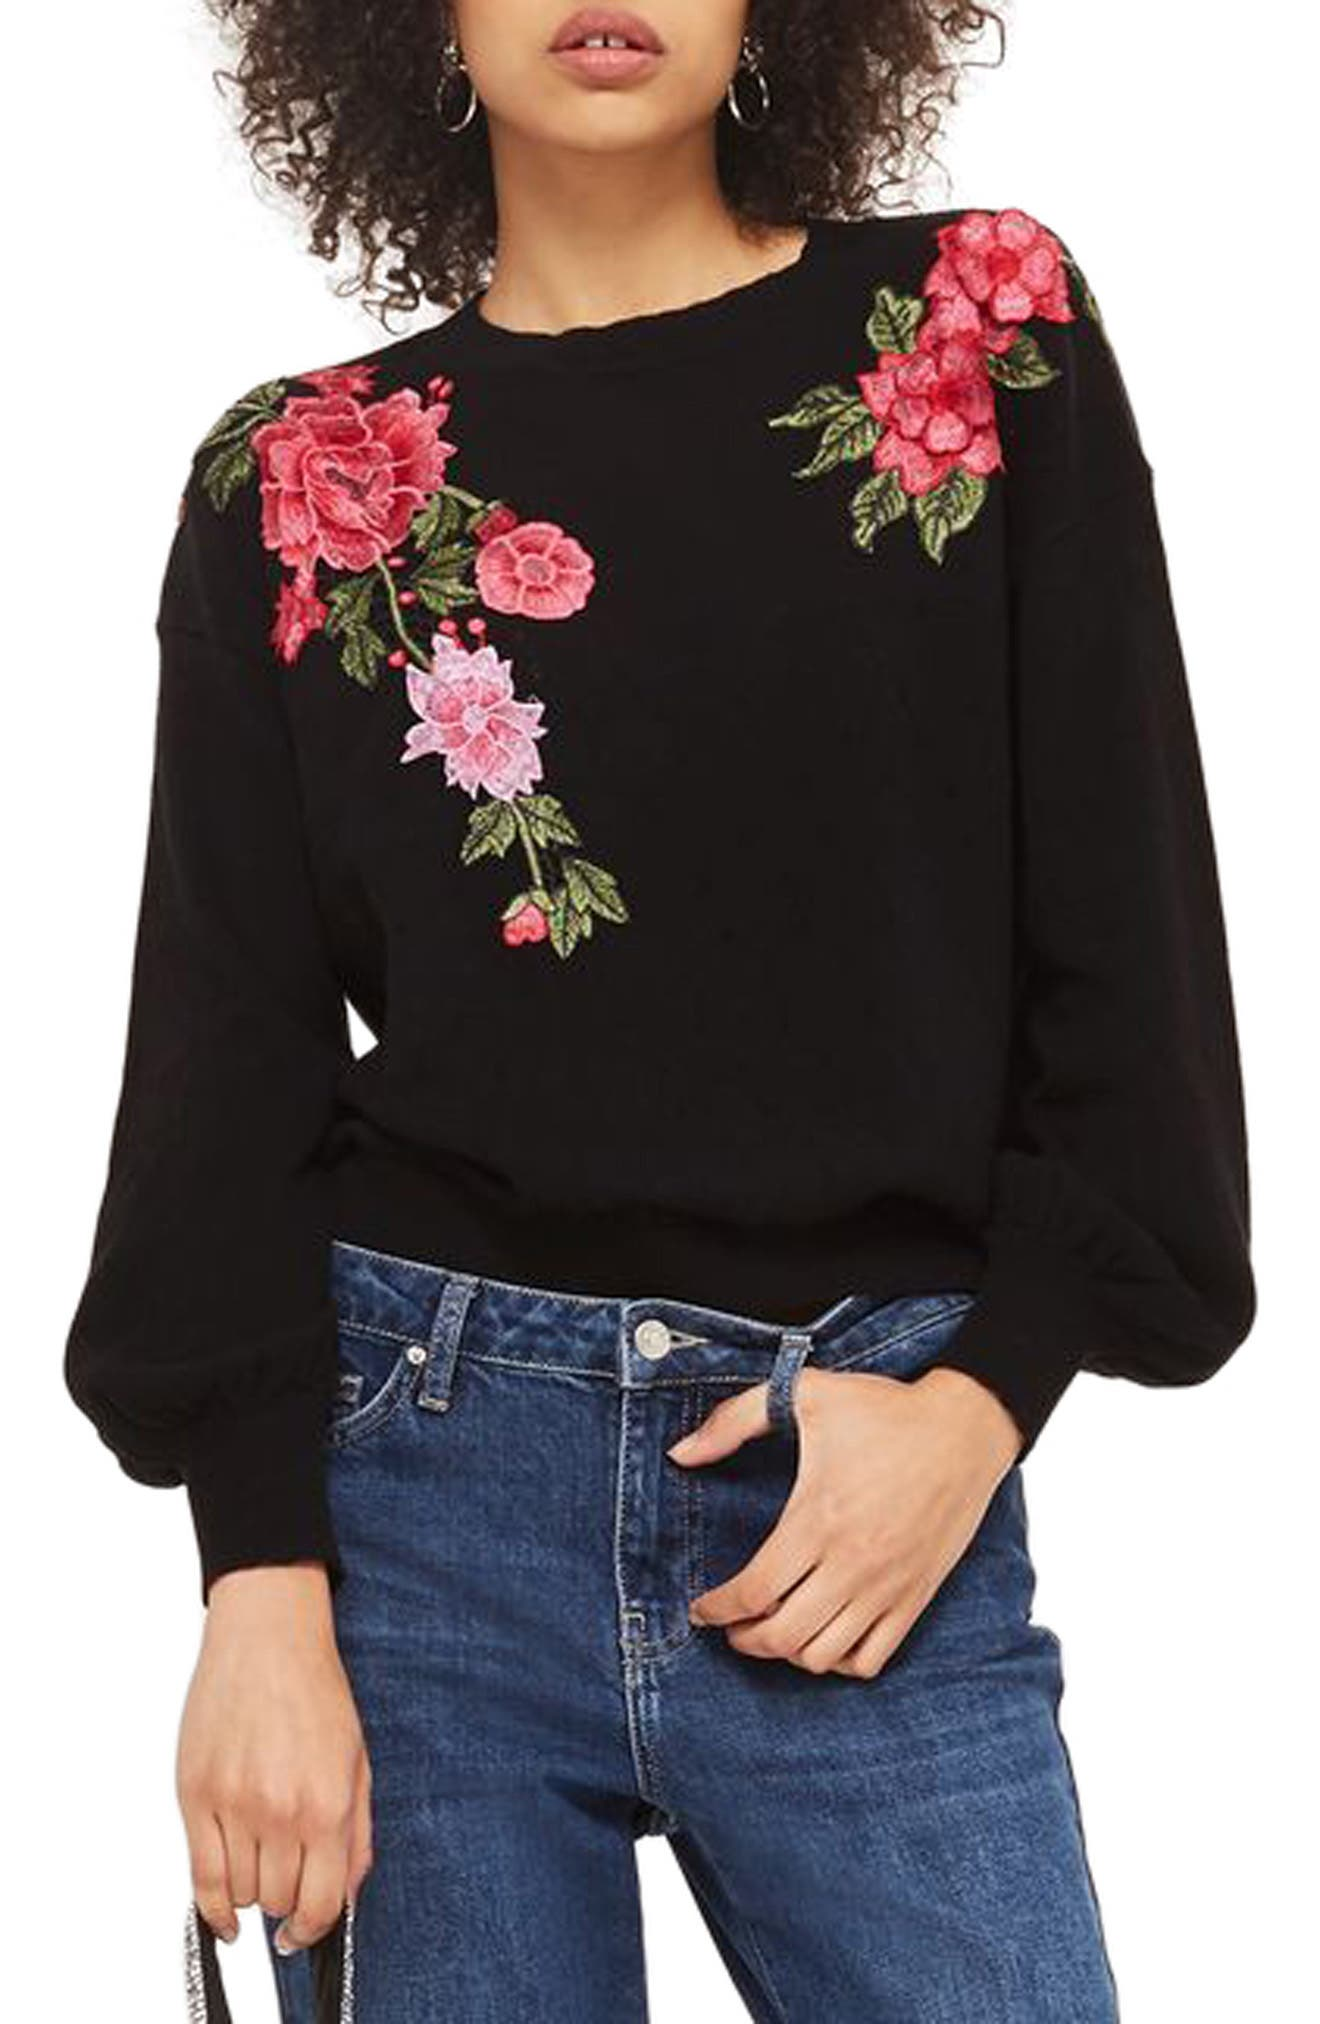 Topshop Stitchy Embroidered Sweater